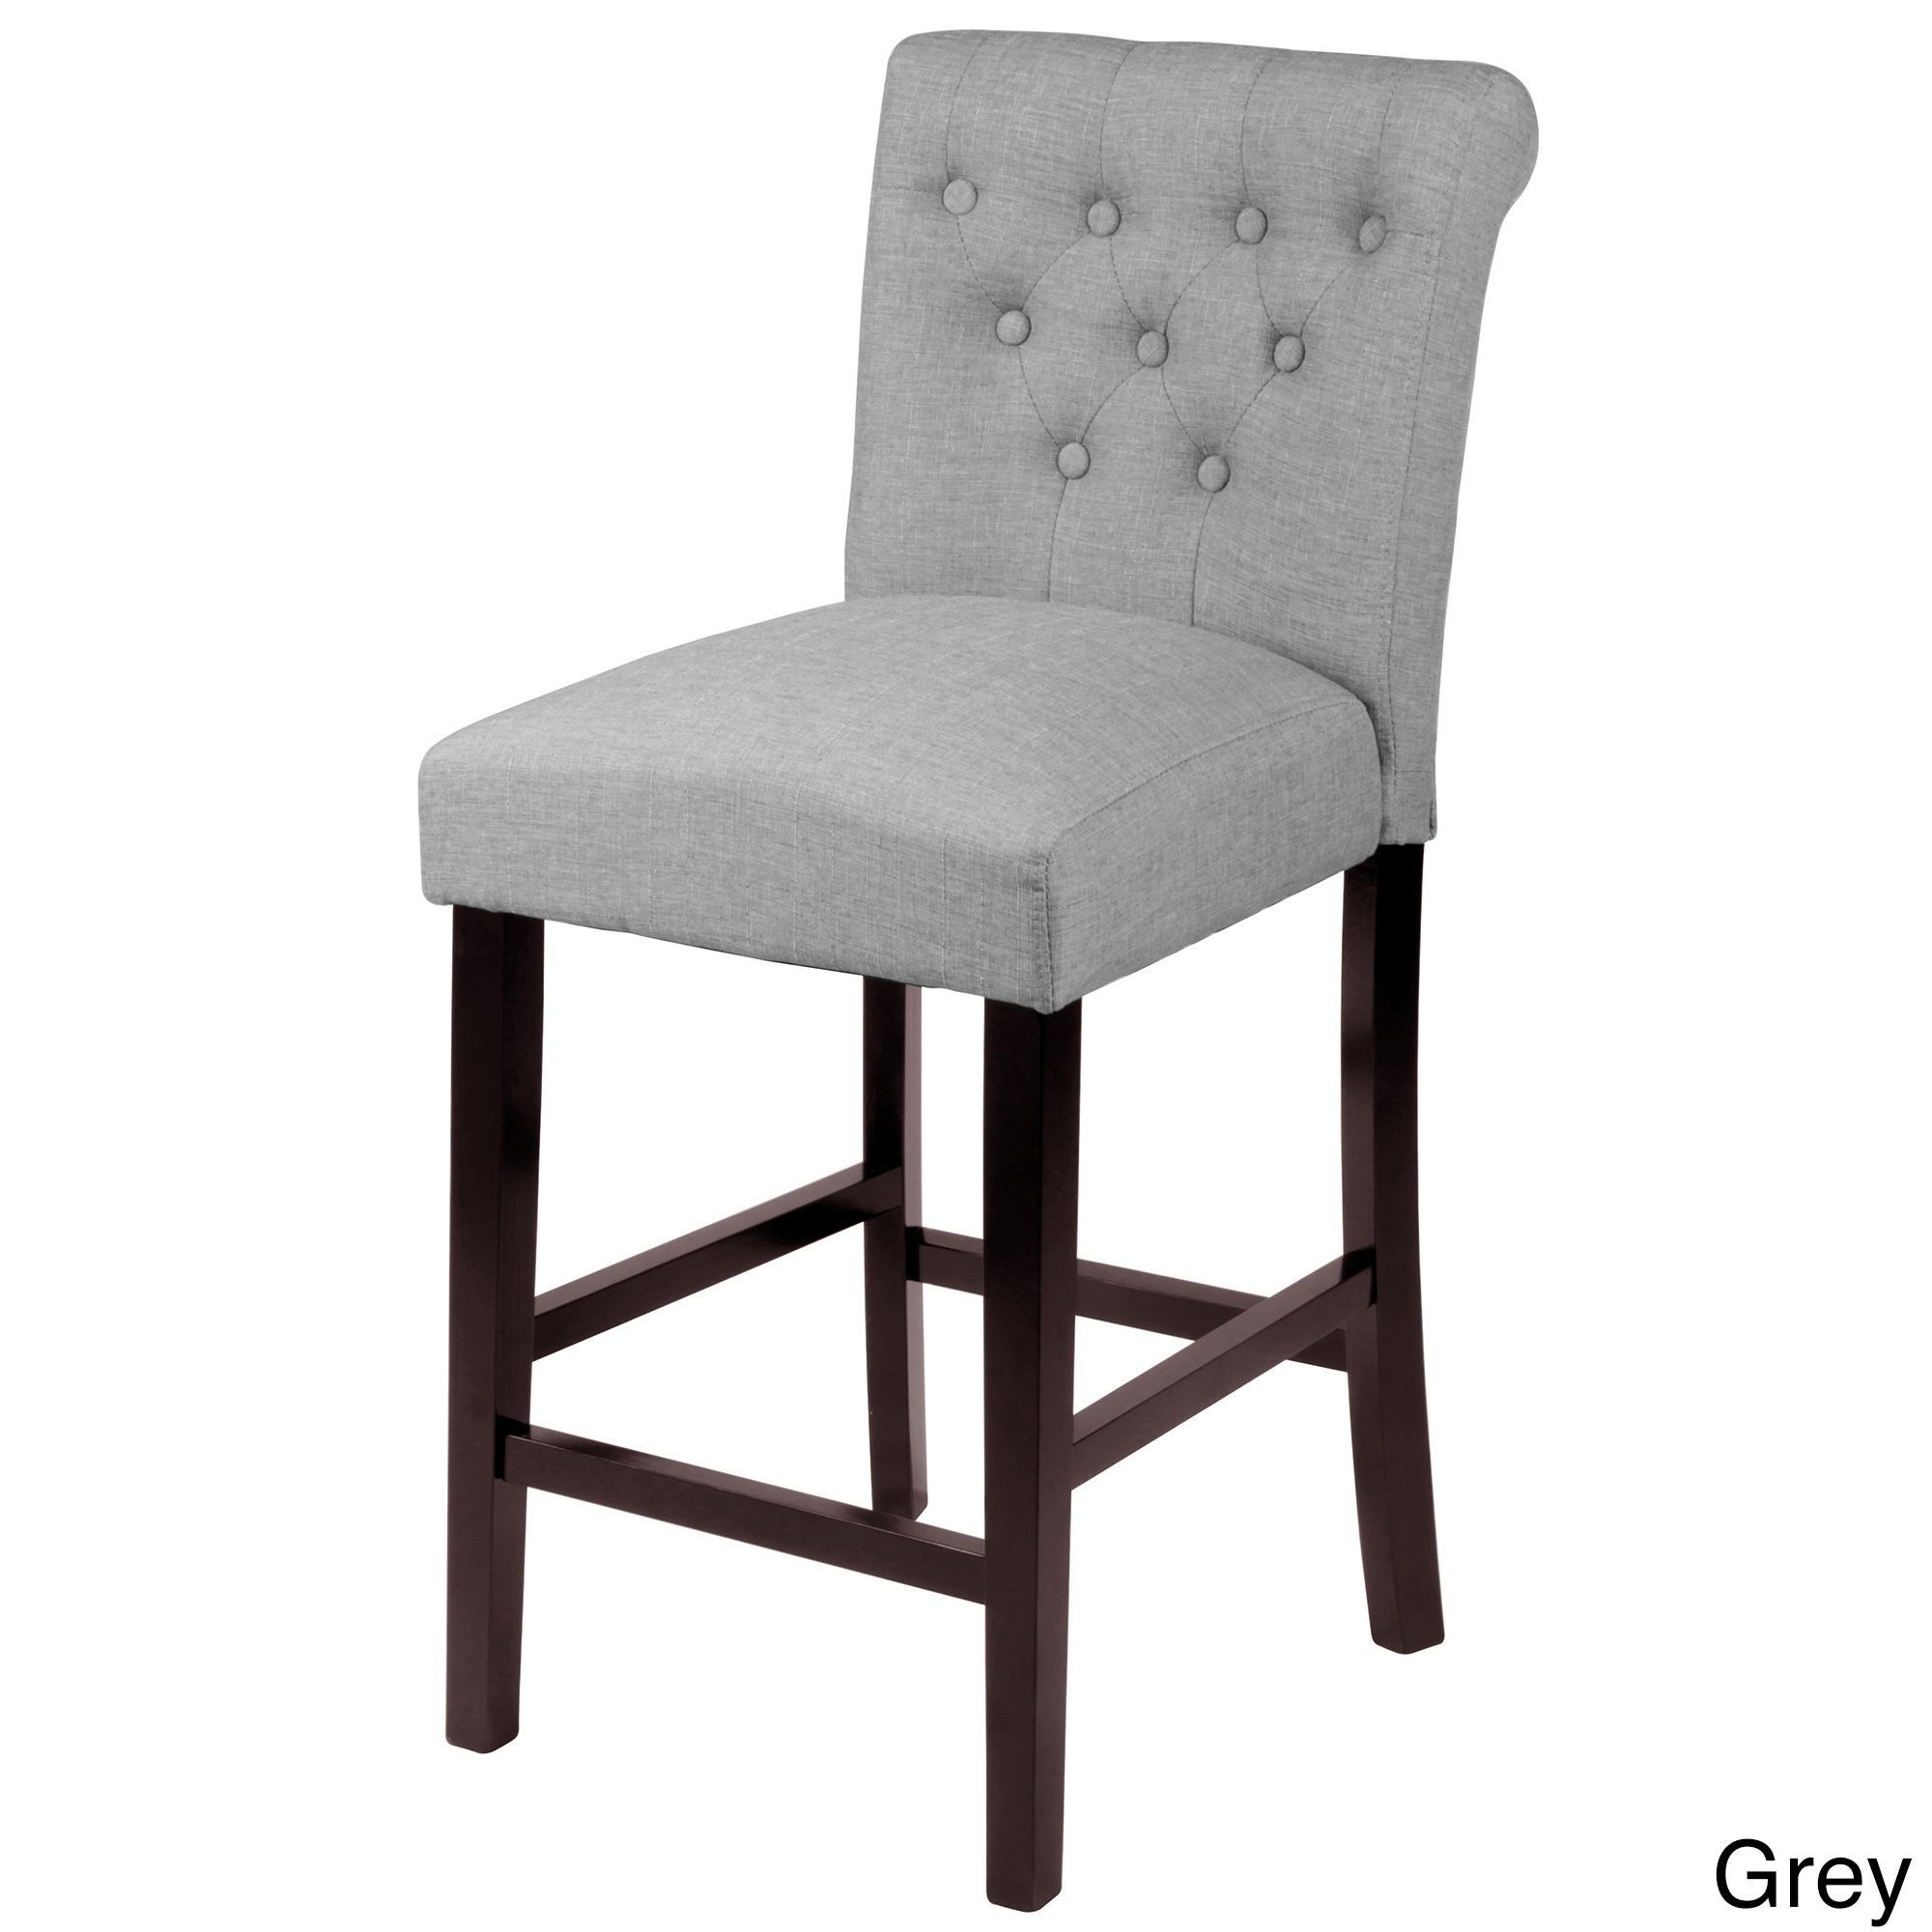 overstock com chairs chair standing aids sopri upholstered counter set of 2